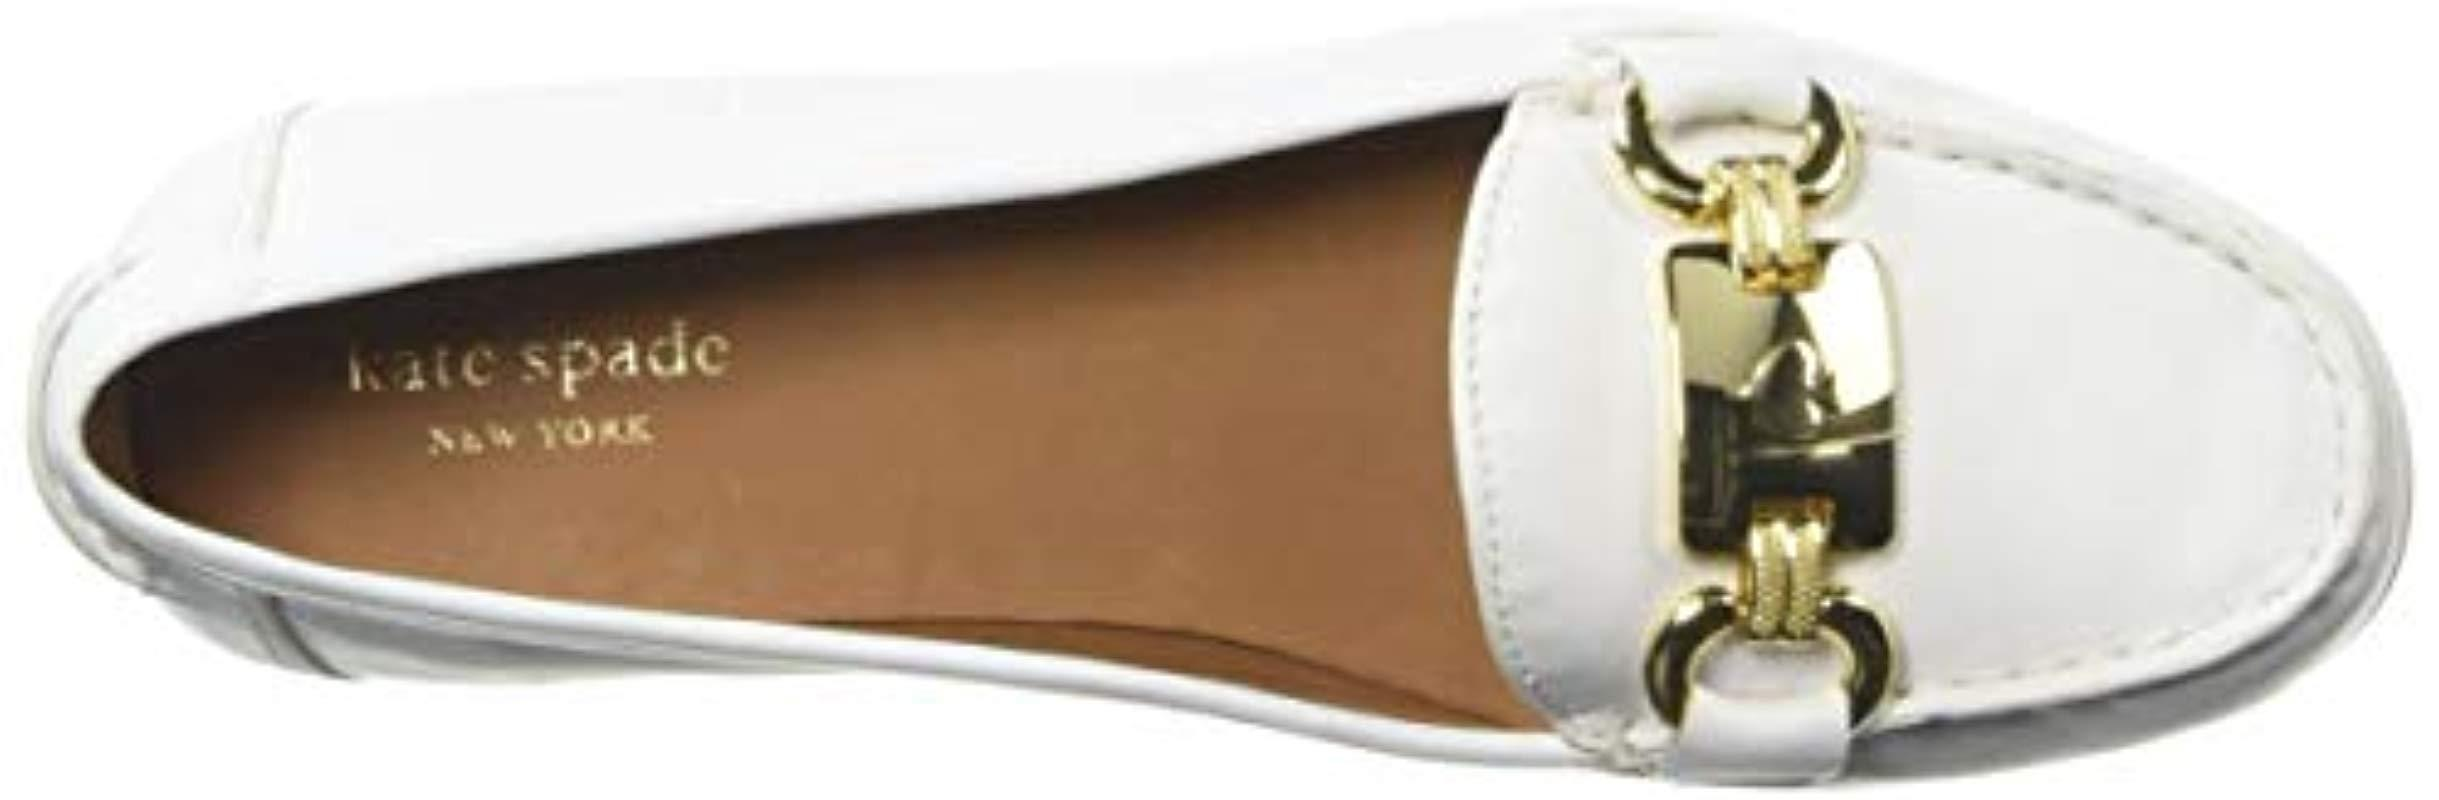 138242c41dc Kate Spade - White Carson Driving Style Loafer - Lyst. View fullscreen